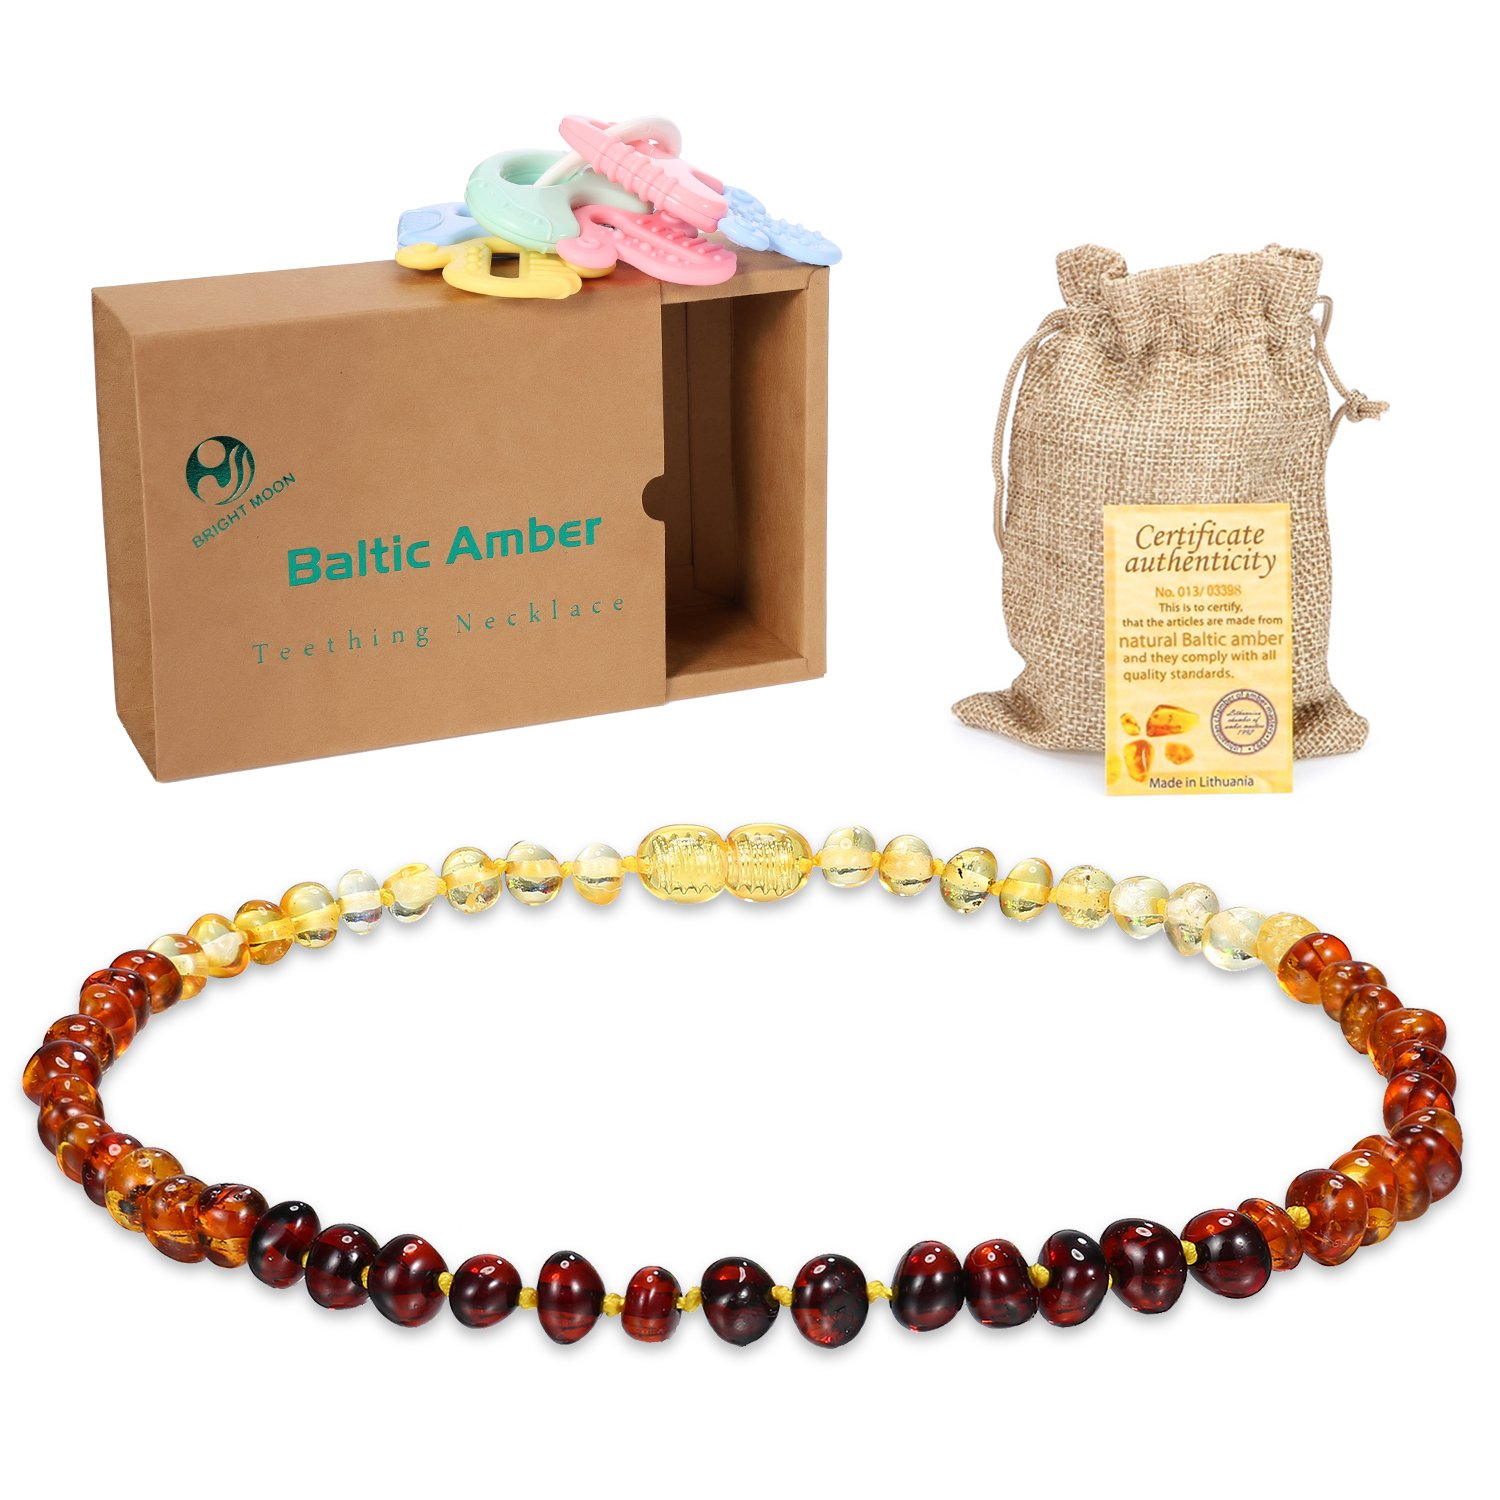 Rainbow Baltic Amber Teething Necklace - (Unisex) Smooth Transparent For NewBorn Baby Anti Flammatory, Drooling Teething Pain Reduce Properties Including Natural Certificated, Birthday Gift